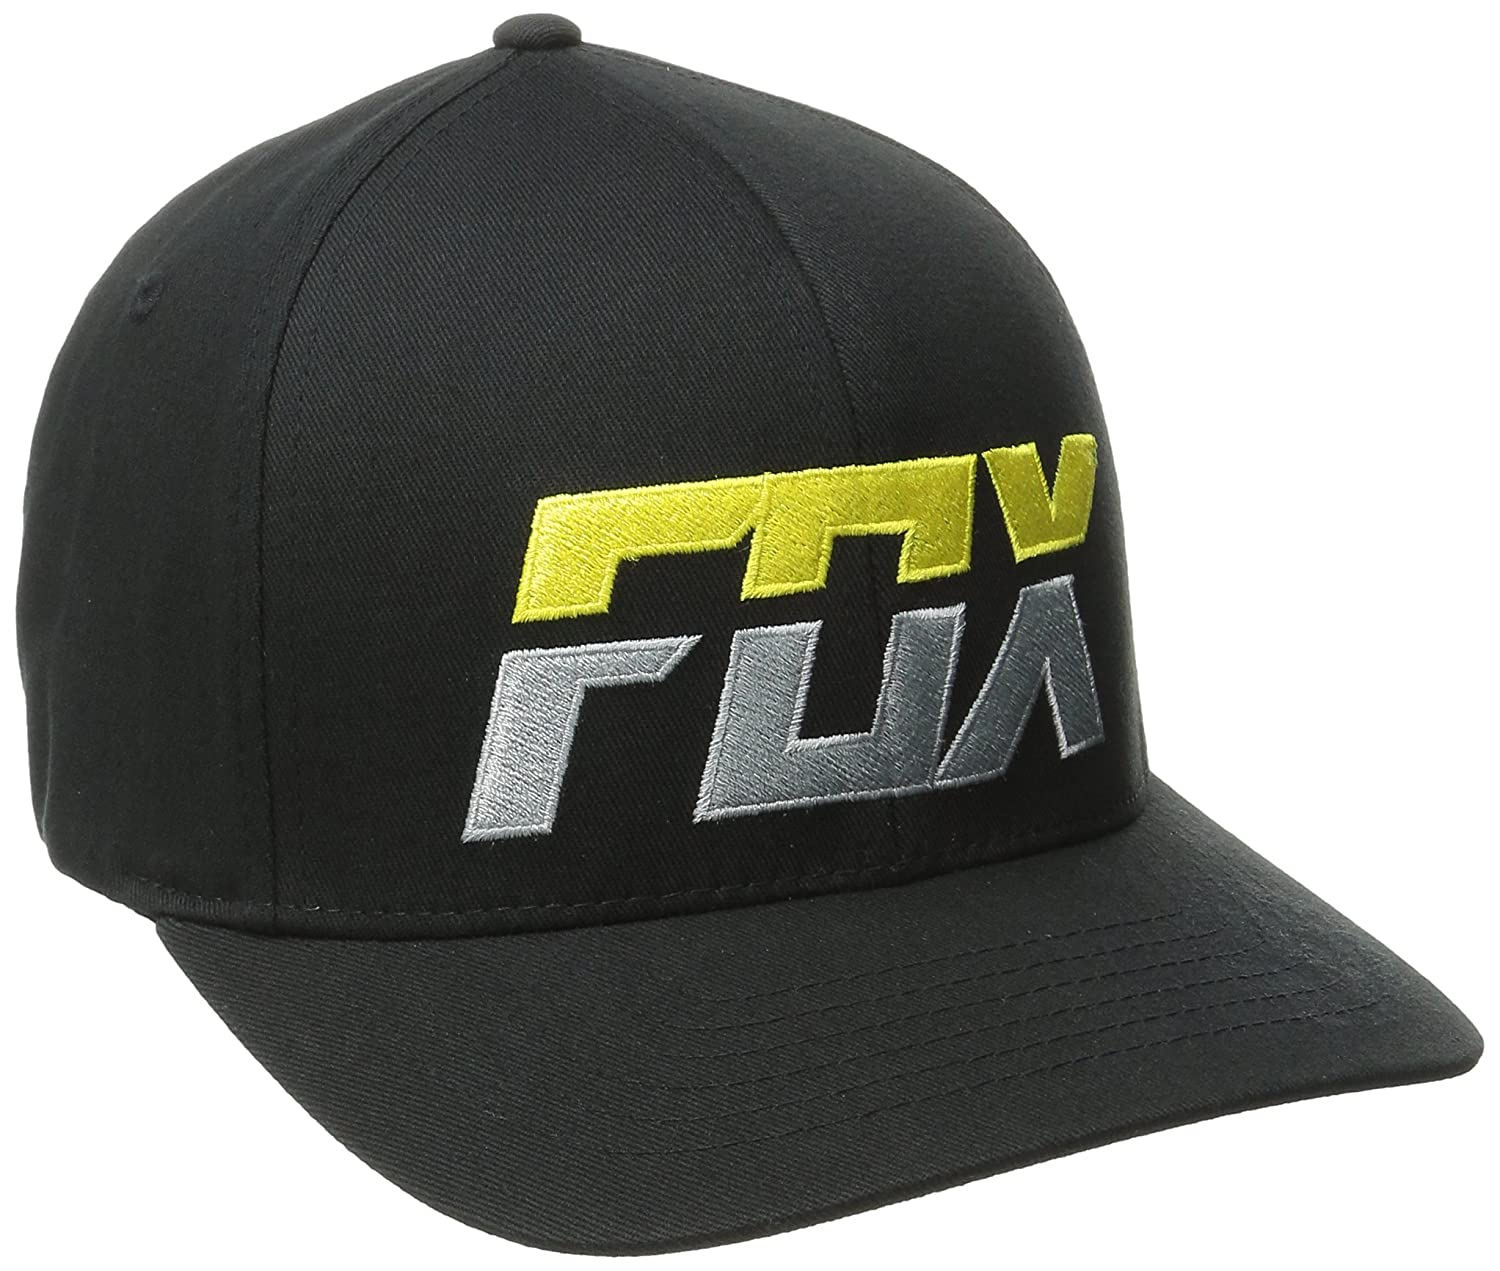 Gorra Fox Racing: Stack Flexfit Hat BK S/M: Amazon.es: Ropa y ...